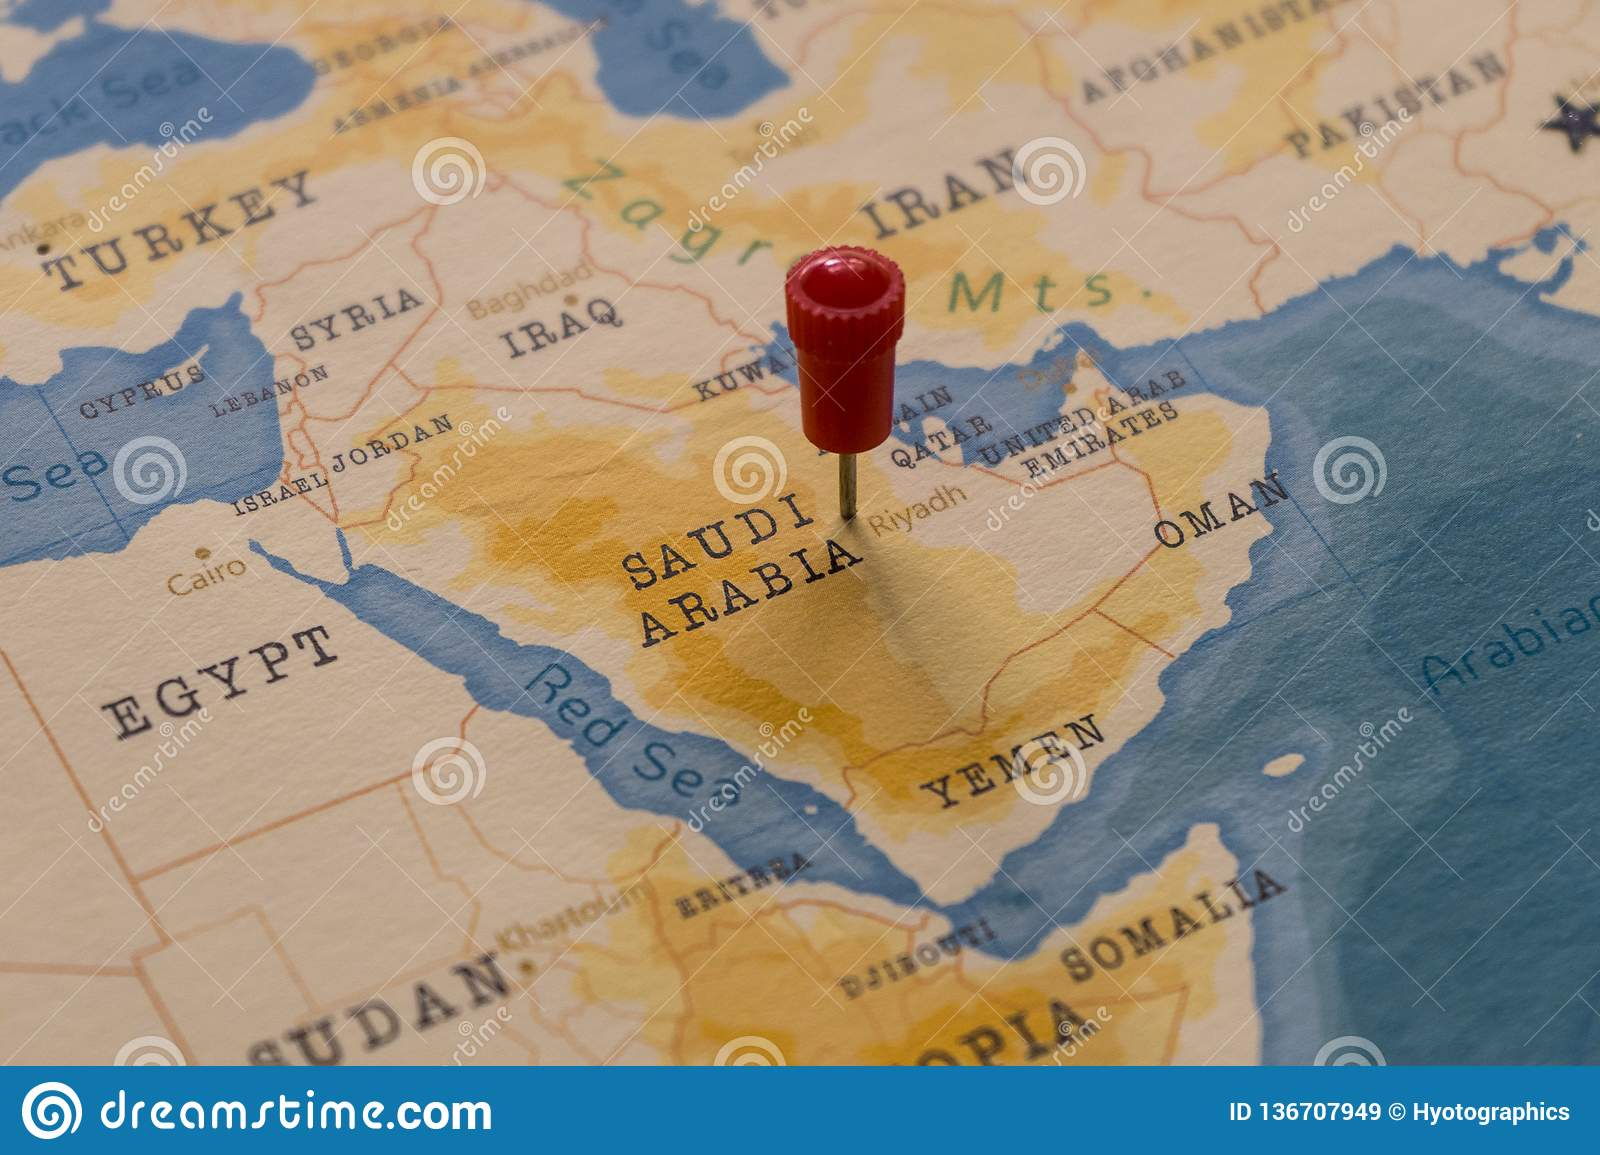 A Pin On Riyadh, Saudi Arabia In The World Map Stock Image ...